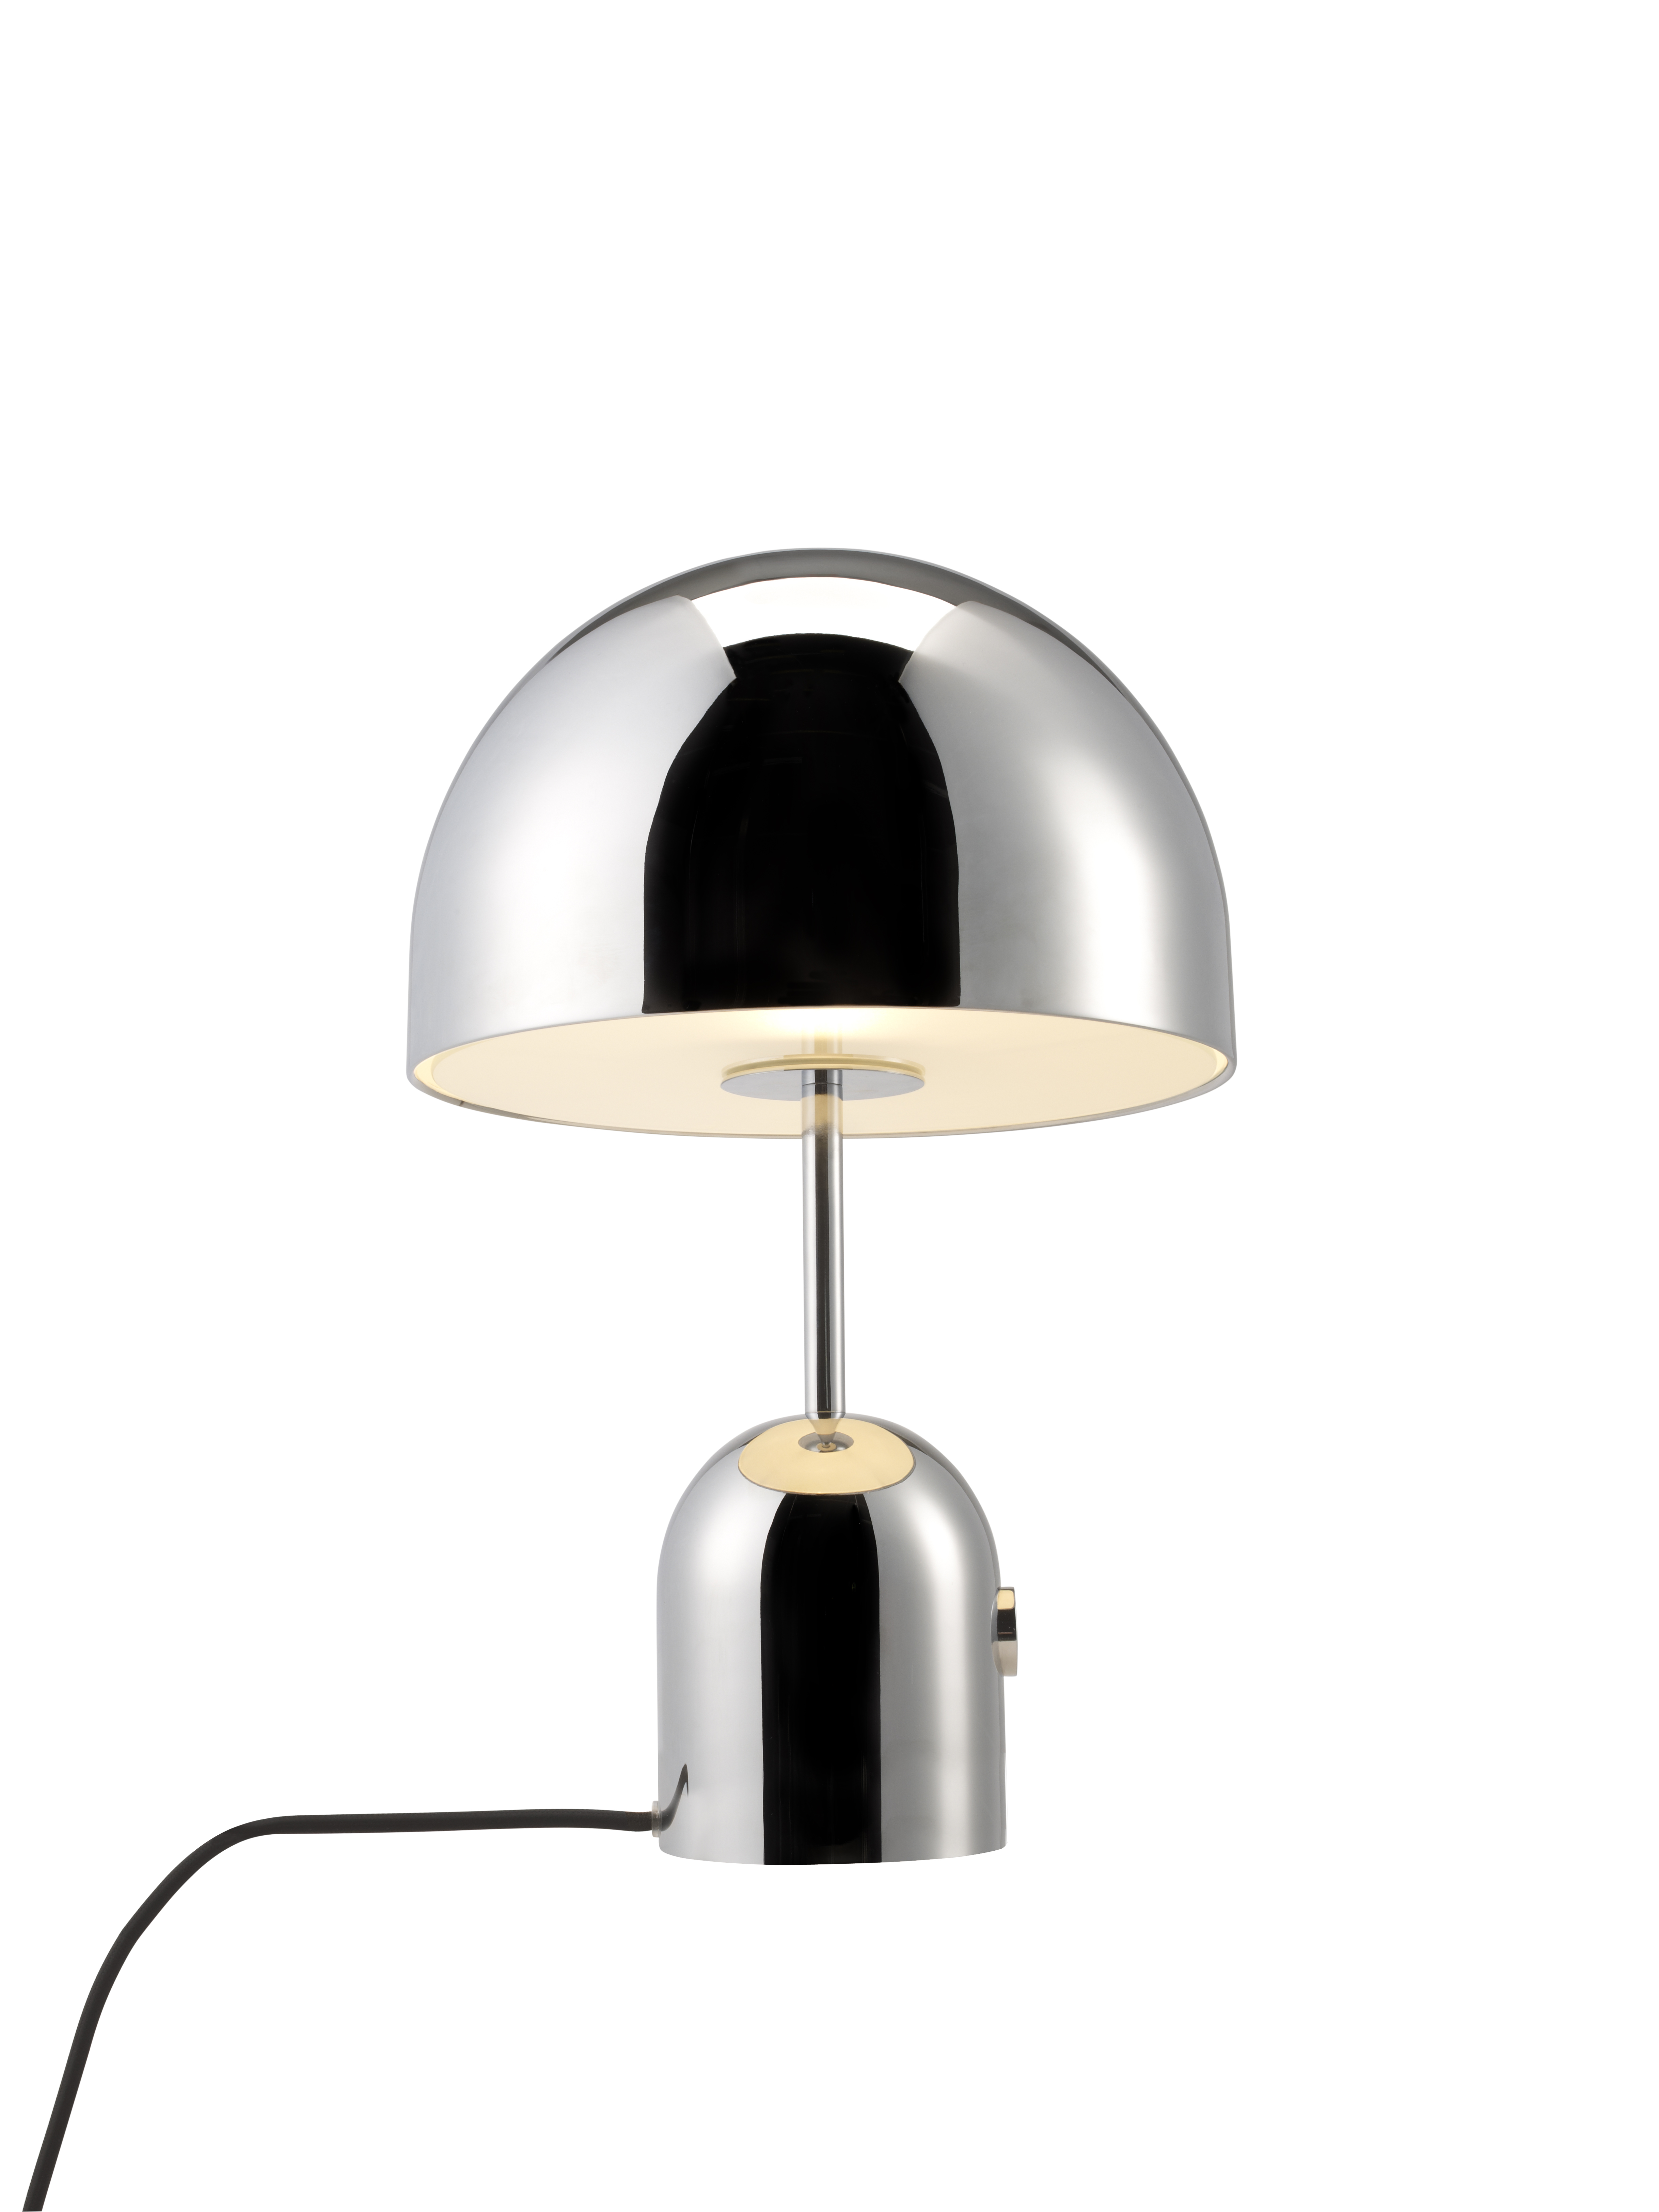 tom dixon bell table lamp. Black Bedroom Furniture Sets. Home Design Ideas